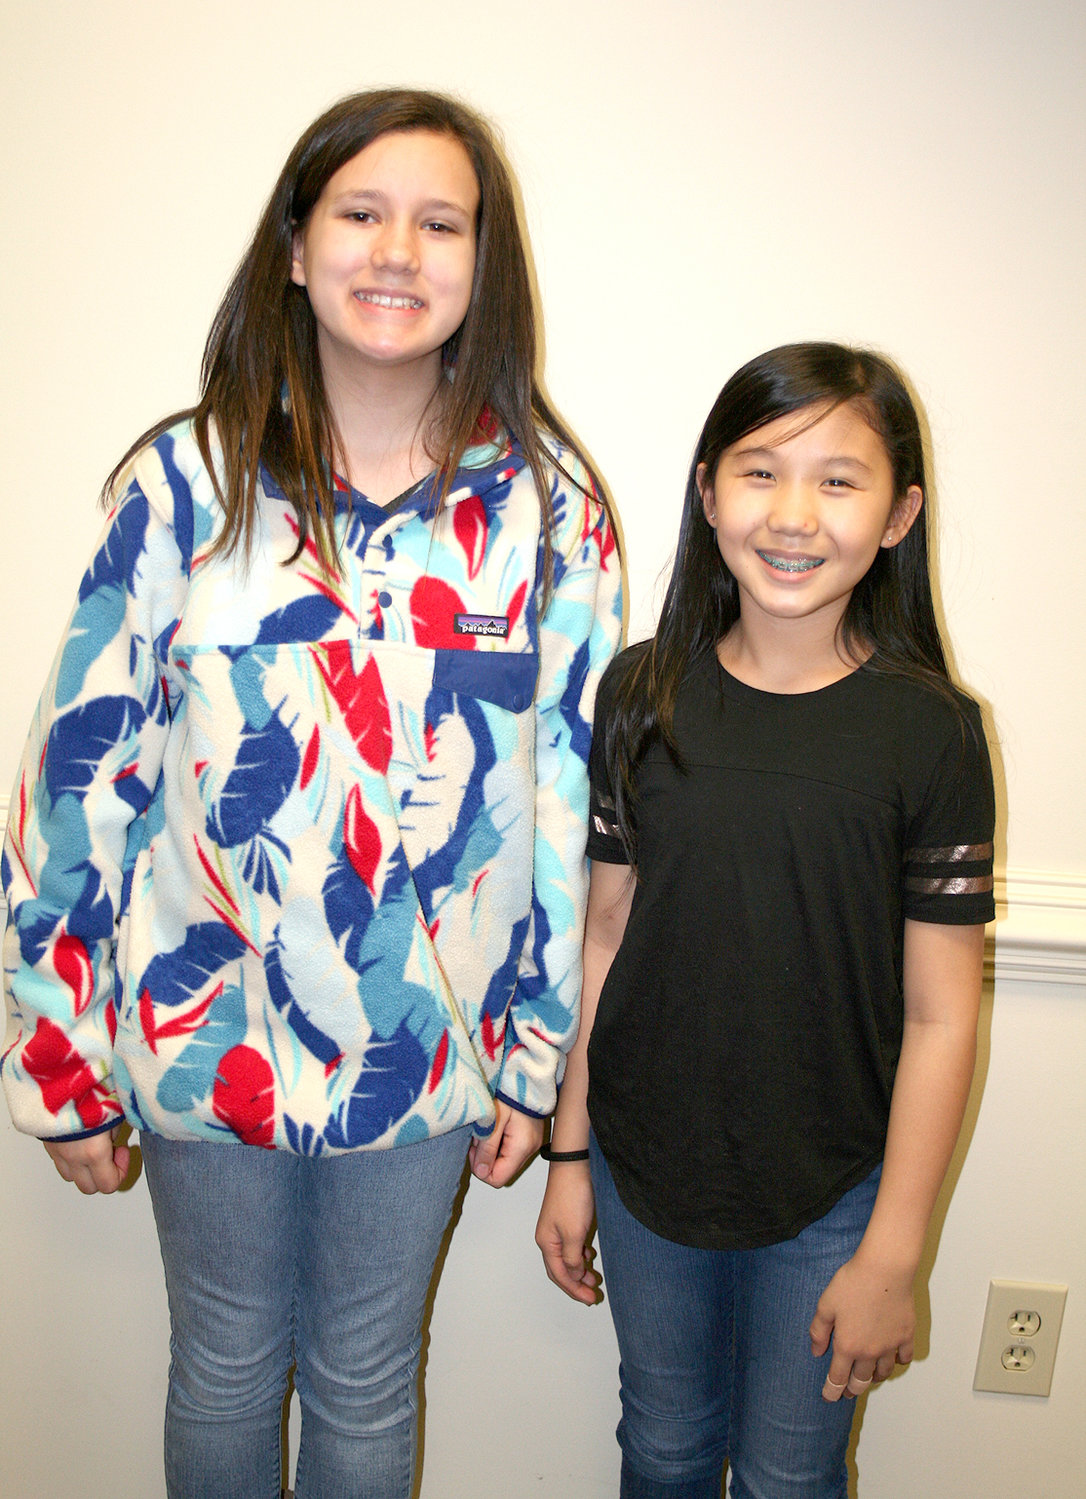 ALLIE STANFIELD and Ellie Lu Fannon, two sixth-graders at Cleveland Middle School, are partnering with Ellie Lu's mom, Emily, to bring awareness of the importance of recycling to Cleveland just in time for Earth Day.